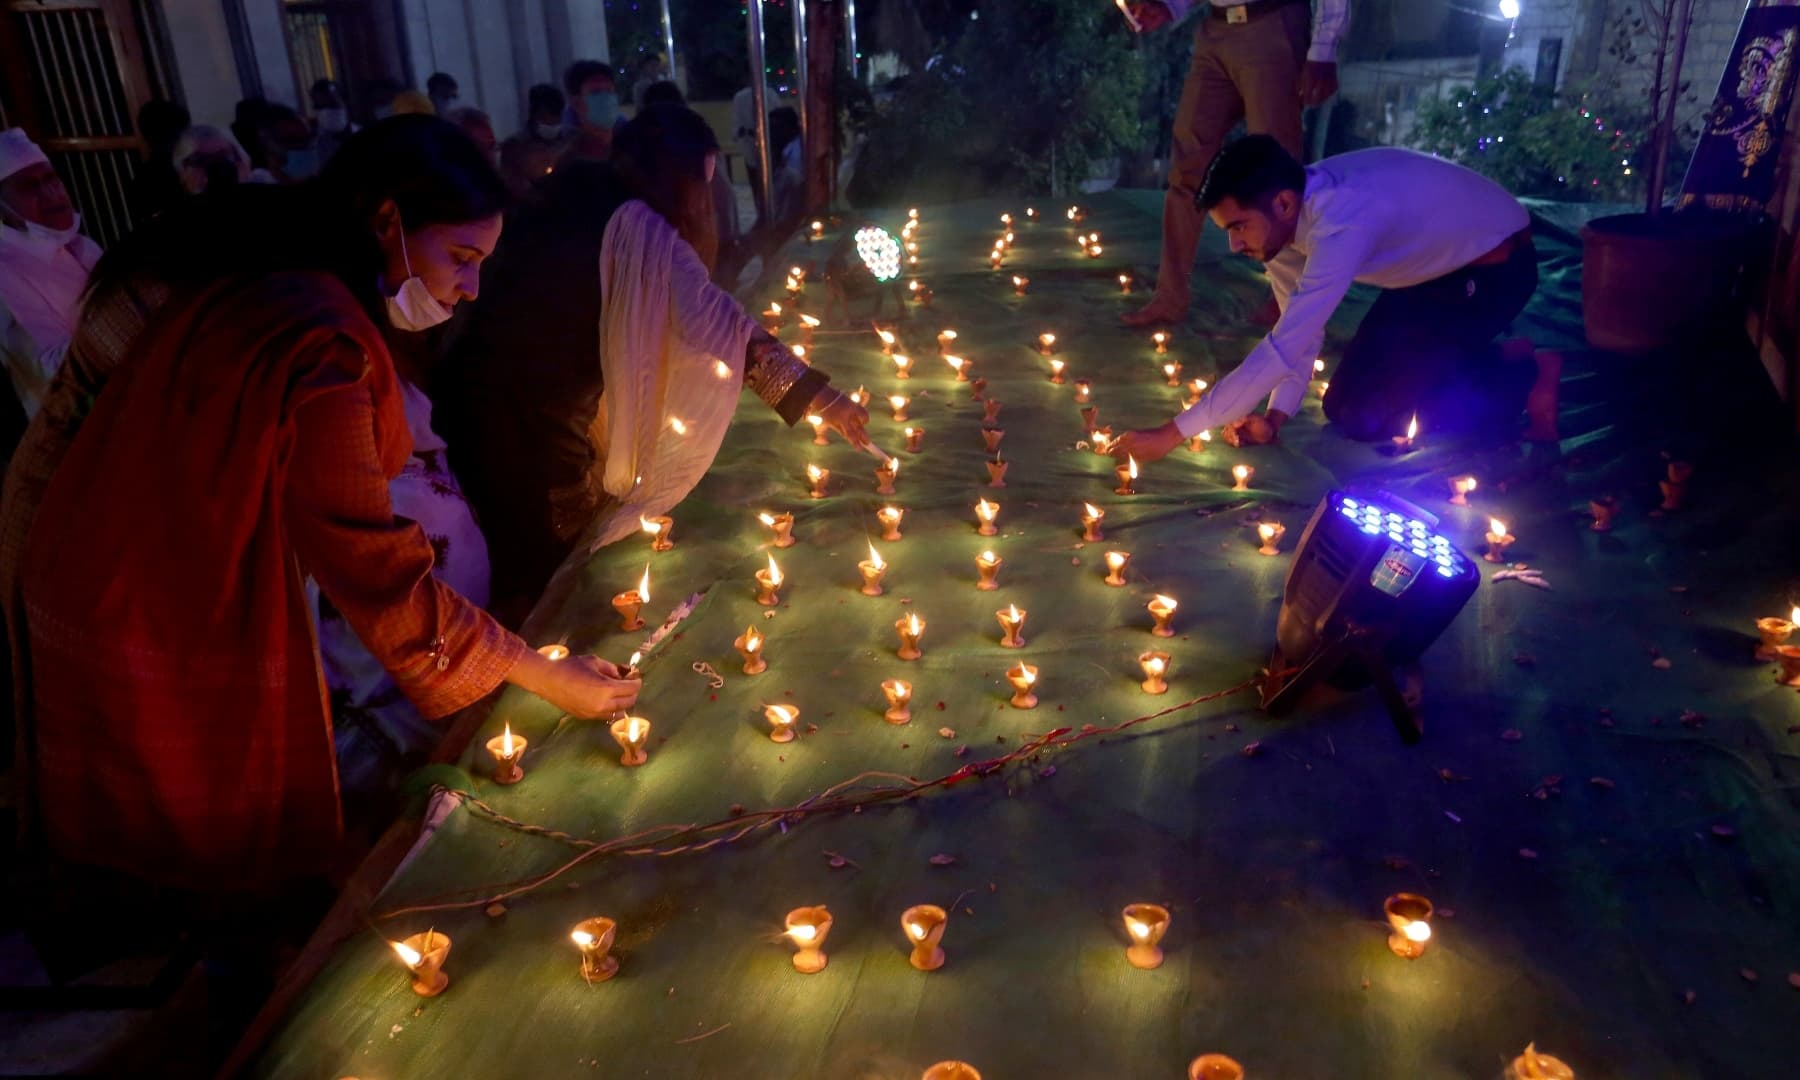 A Hindu family lights clay lamps during a ceremony to celebrate Diwali at Swami Narayan temple in Karachi, Saturday. — AP